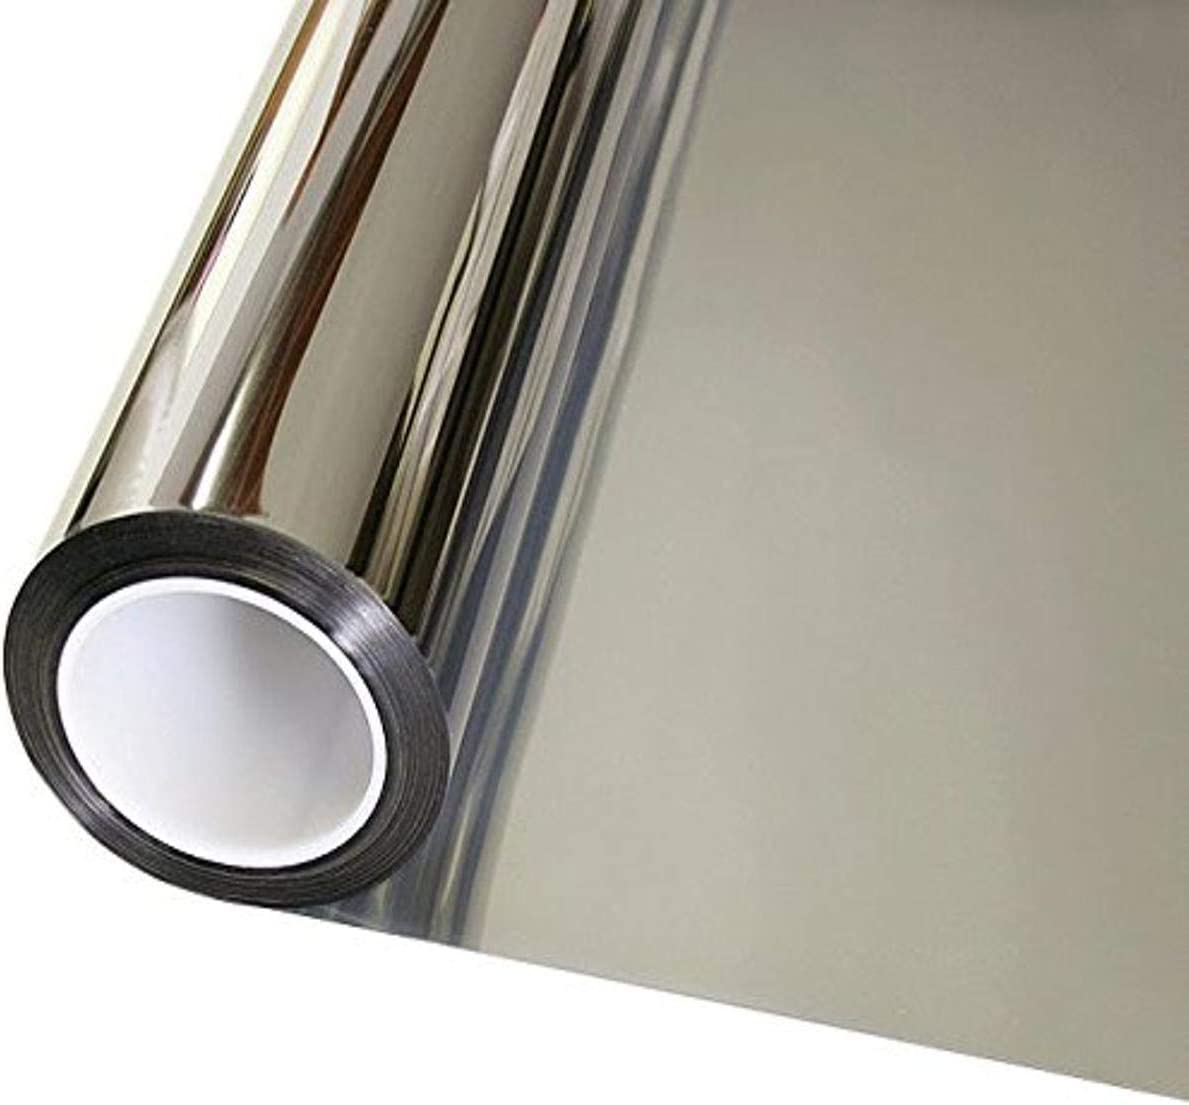 OFHome One Way Privacy Film Static uv Window Insulation Film Sun Blocking Cling Film with Glue Window Tinting Film for Home Living-Room Office Diamond Silver 35.4inX196.9in